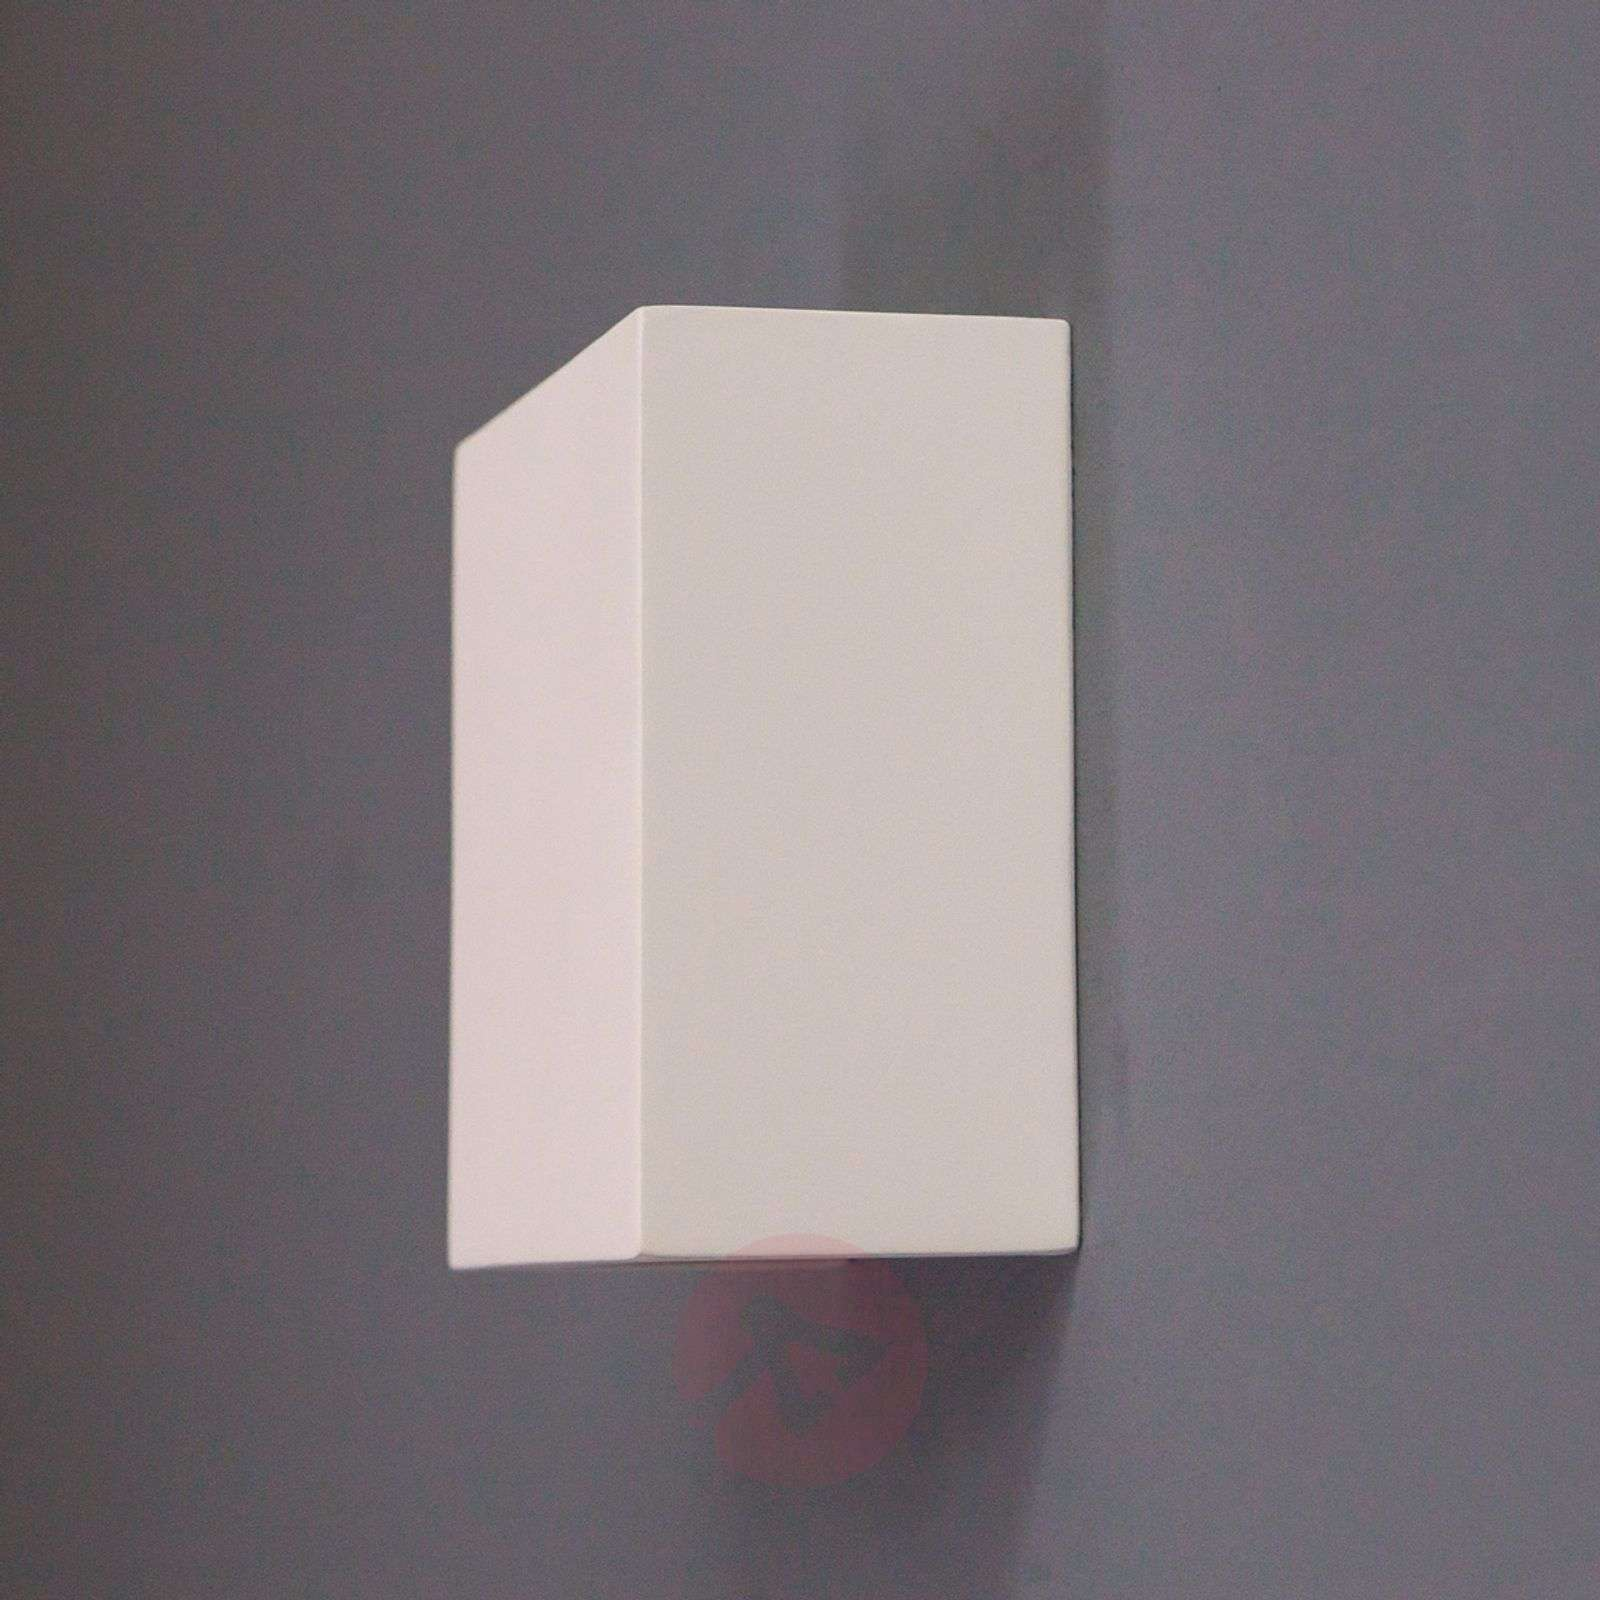 Fabiola Wall Light Plaster-9613012-02